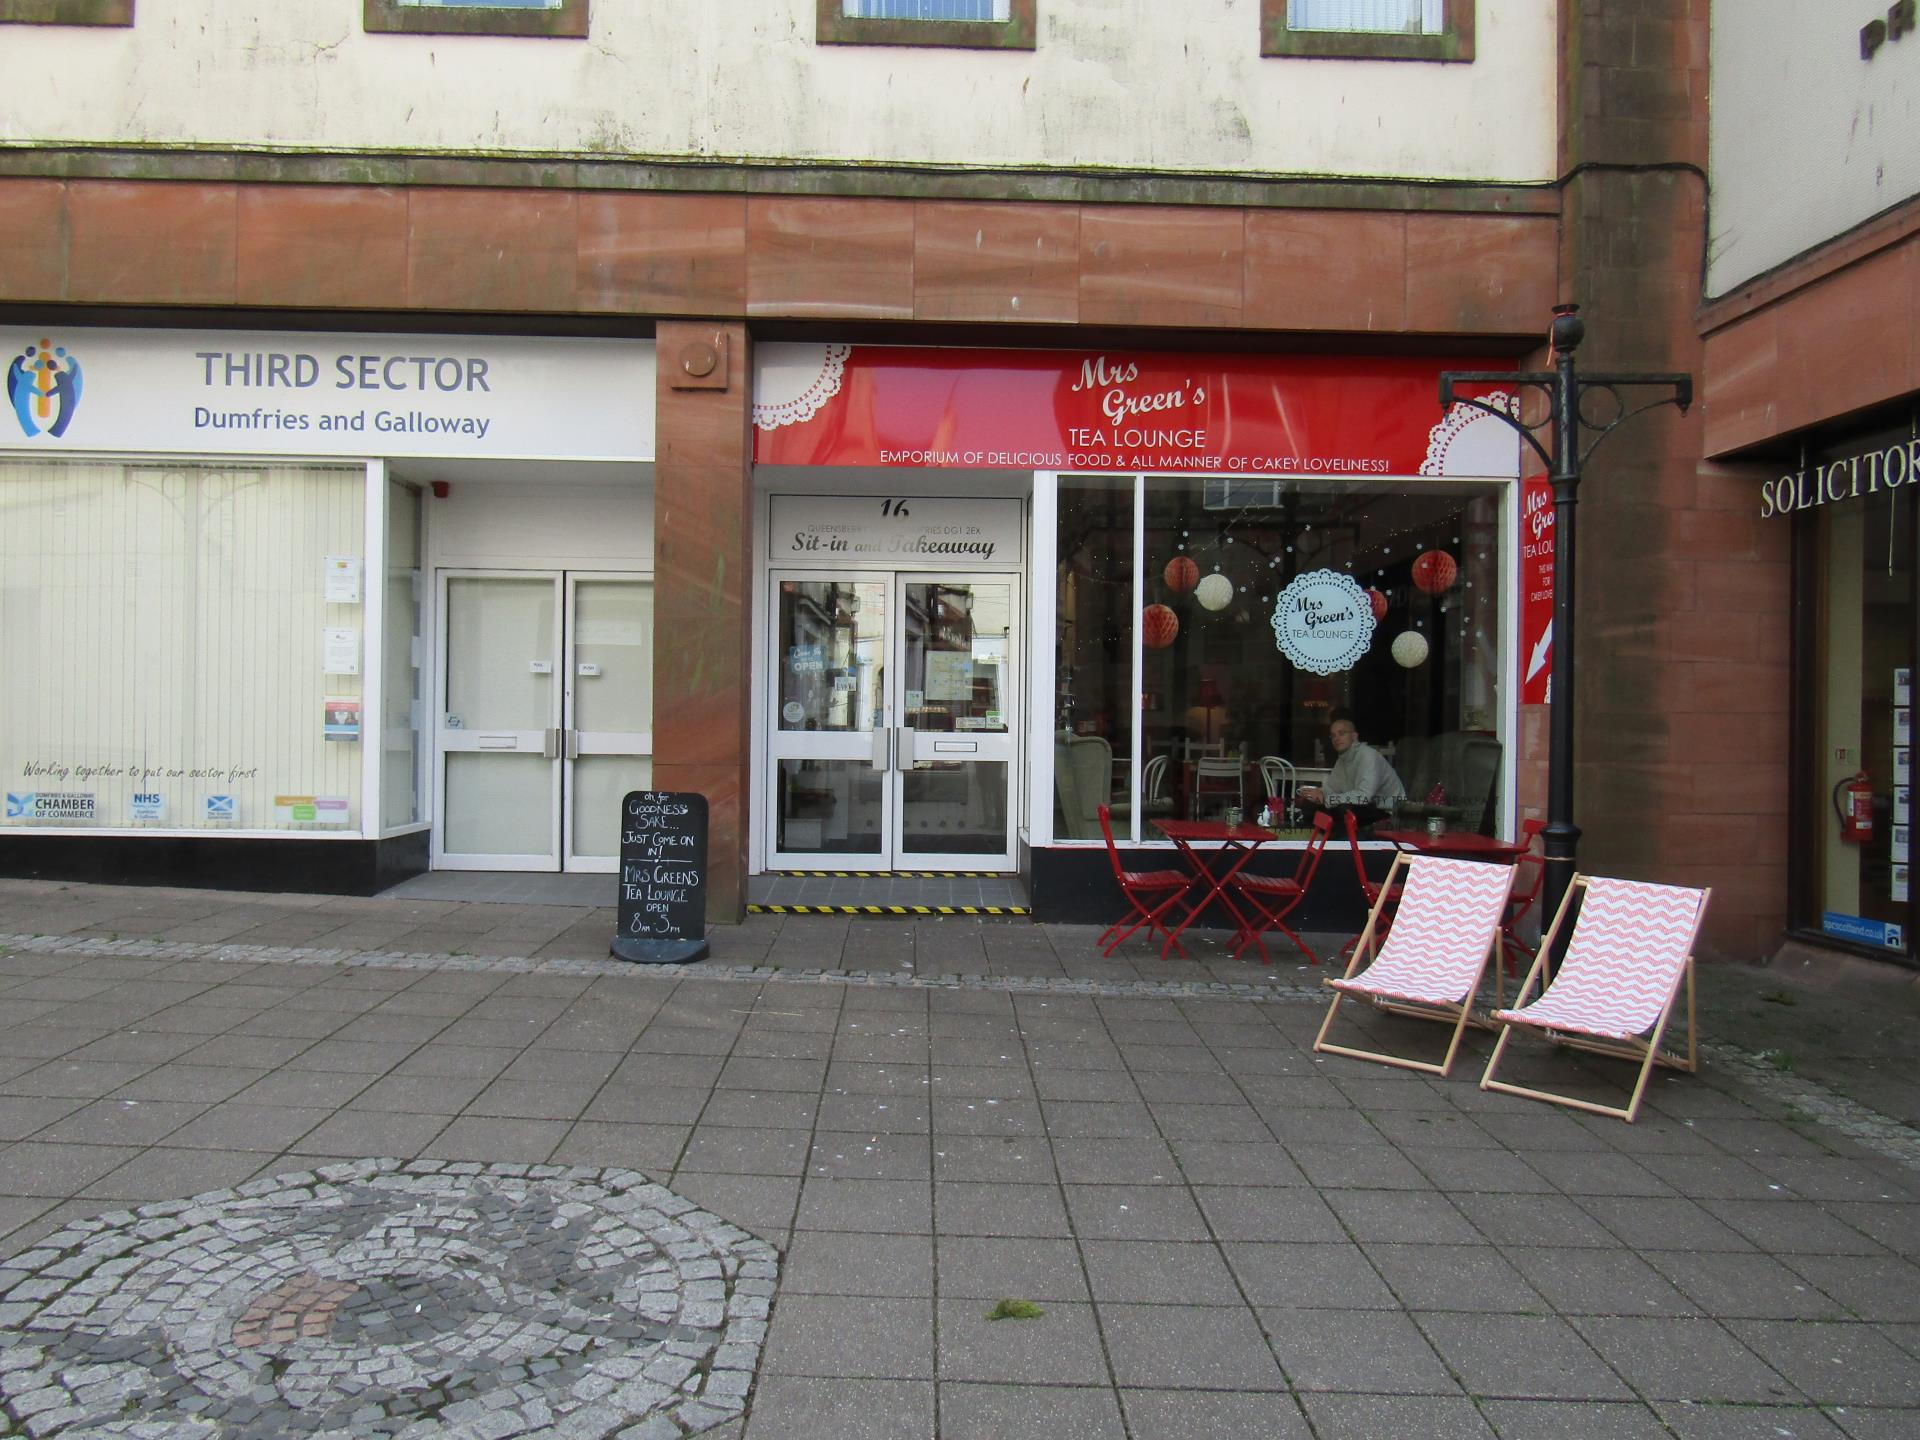 Picture of Mrs Green's Tea Lounge, Dumfries